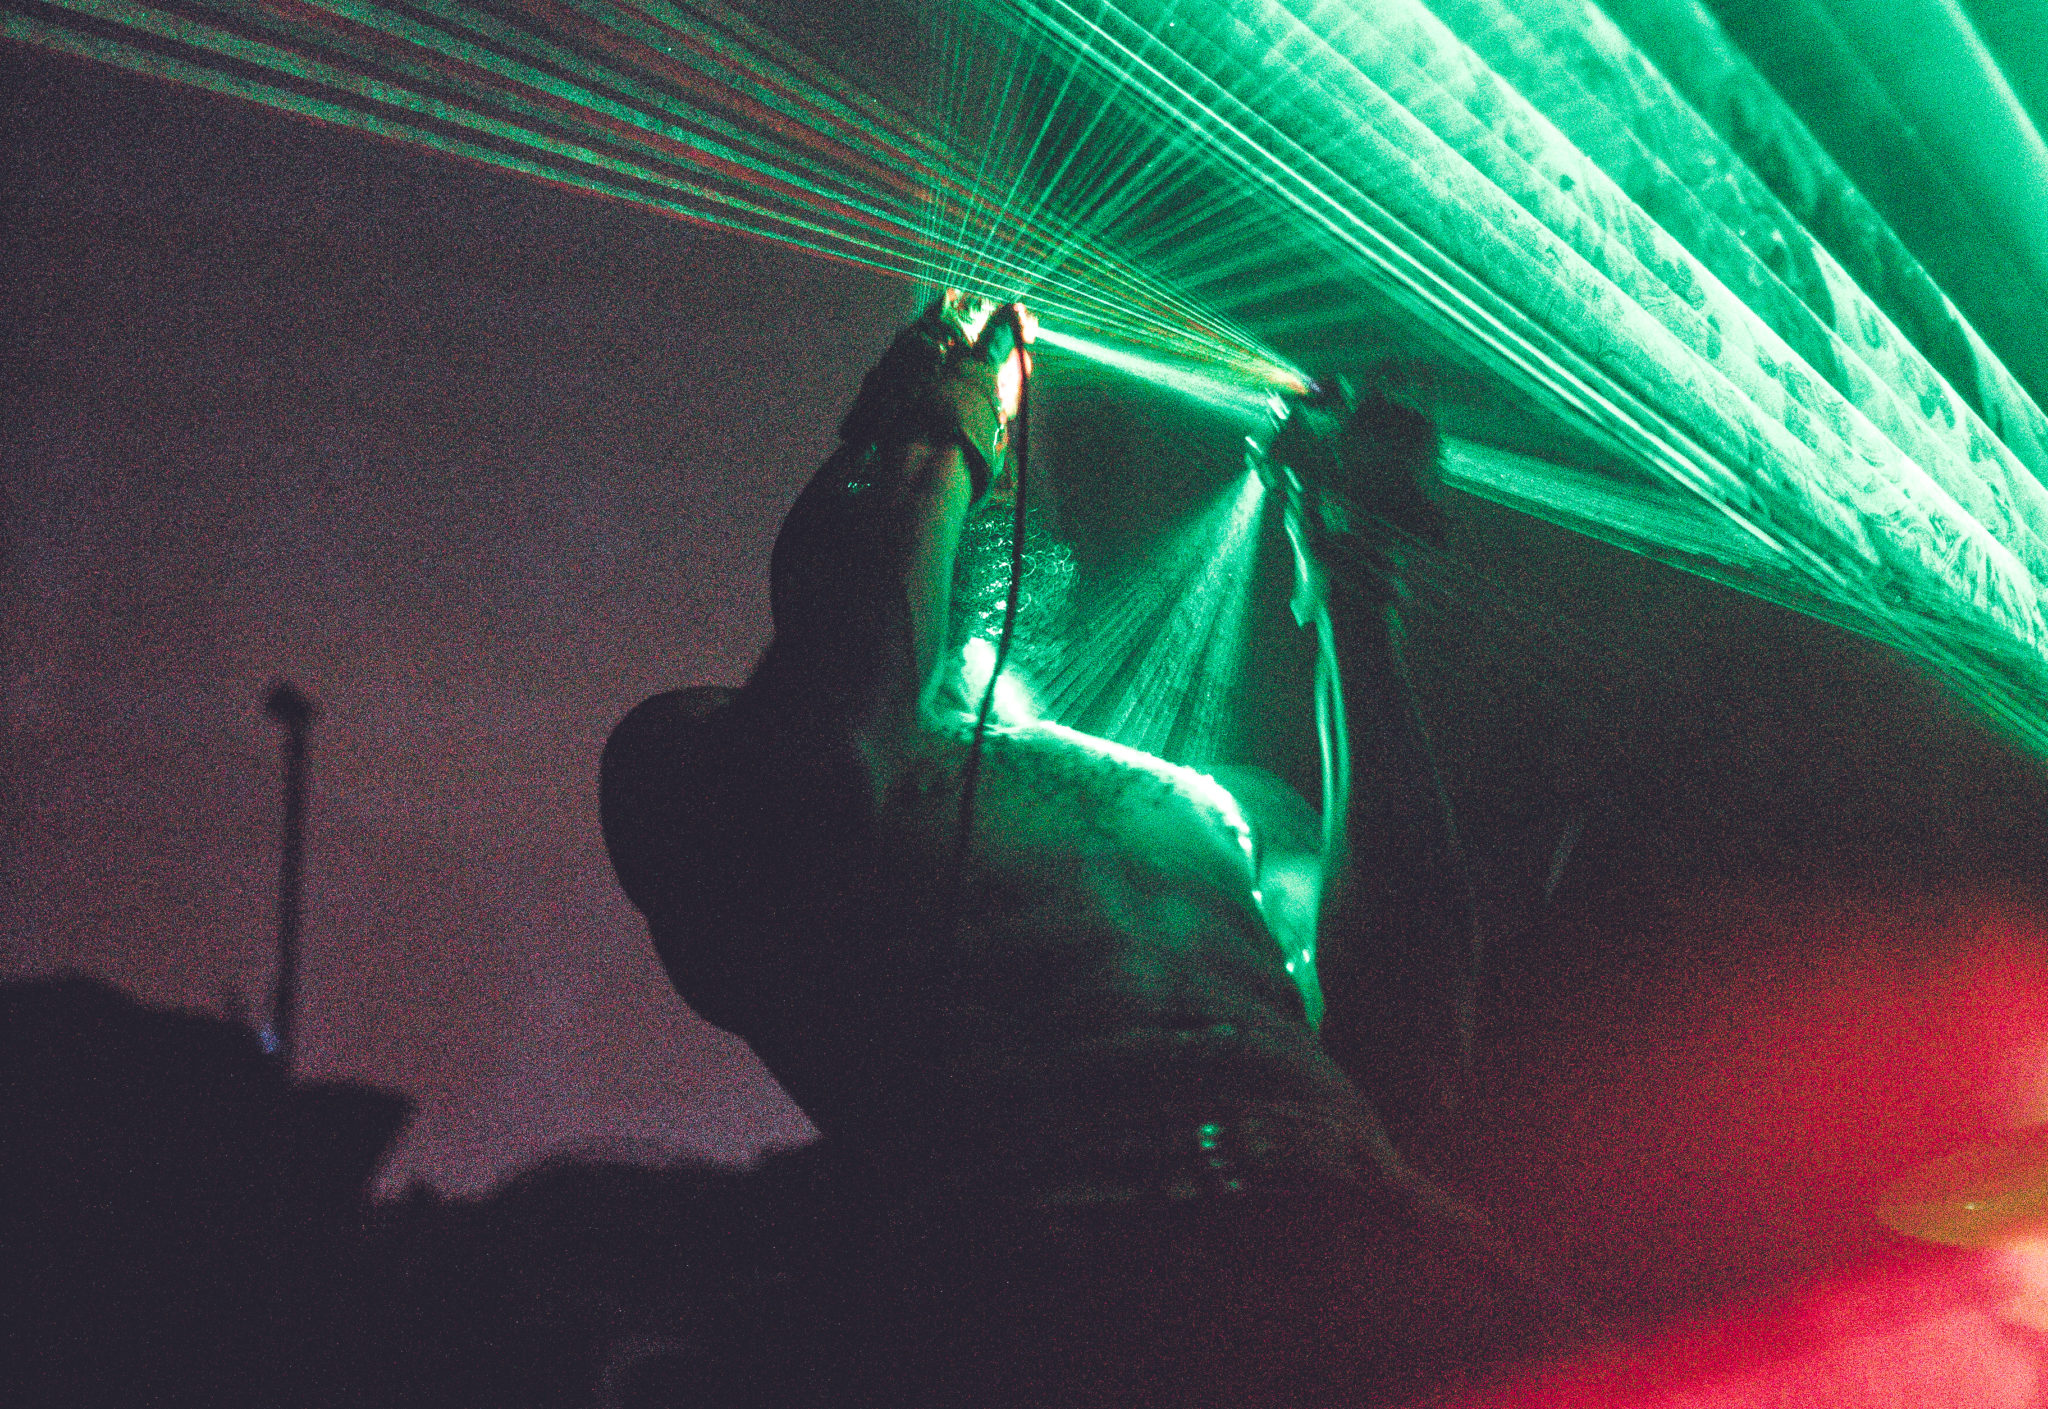 LIVE REVIEW: Death Grips spark an uproar at the Agora Theatre